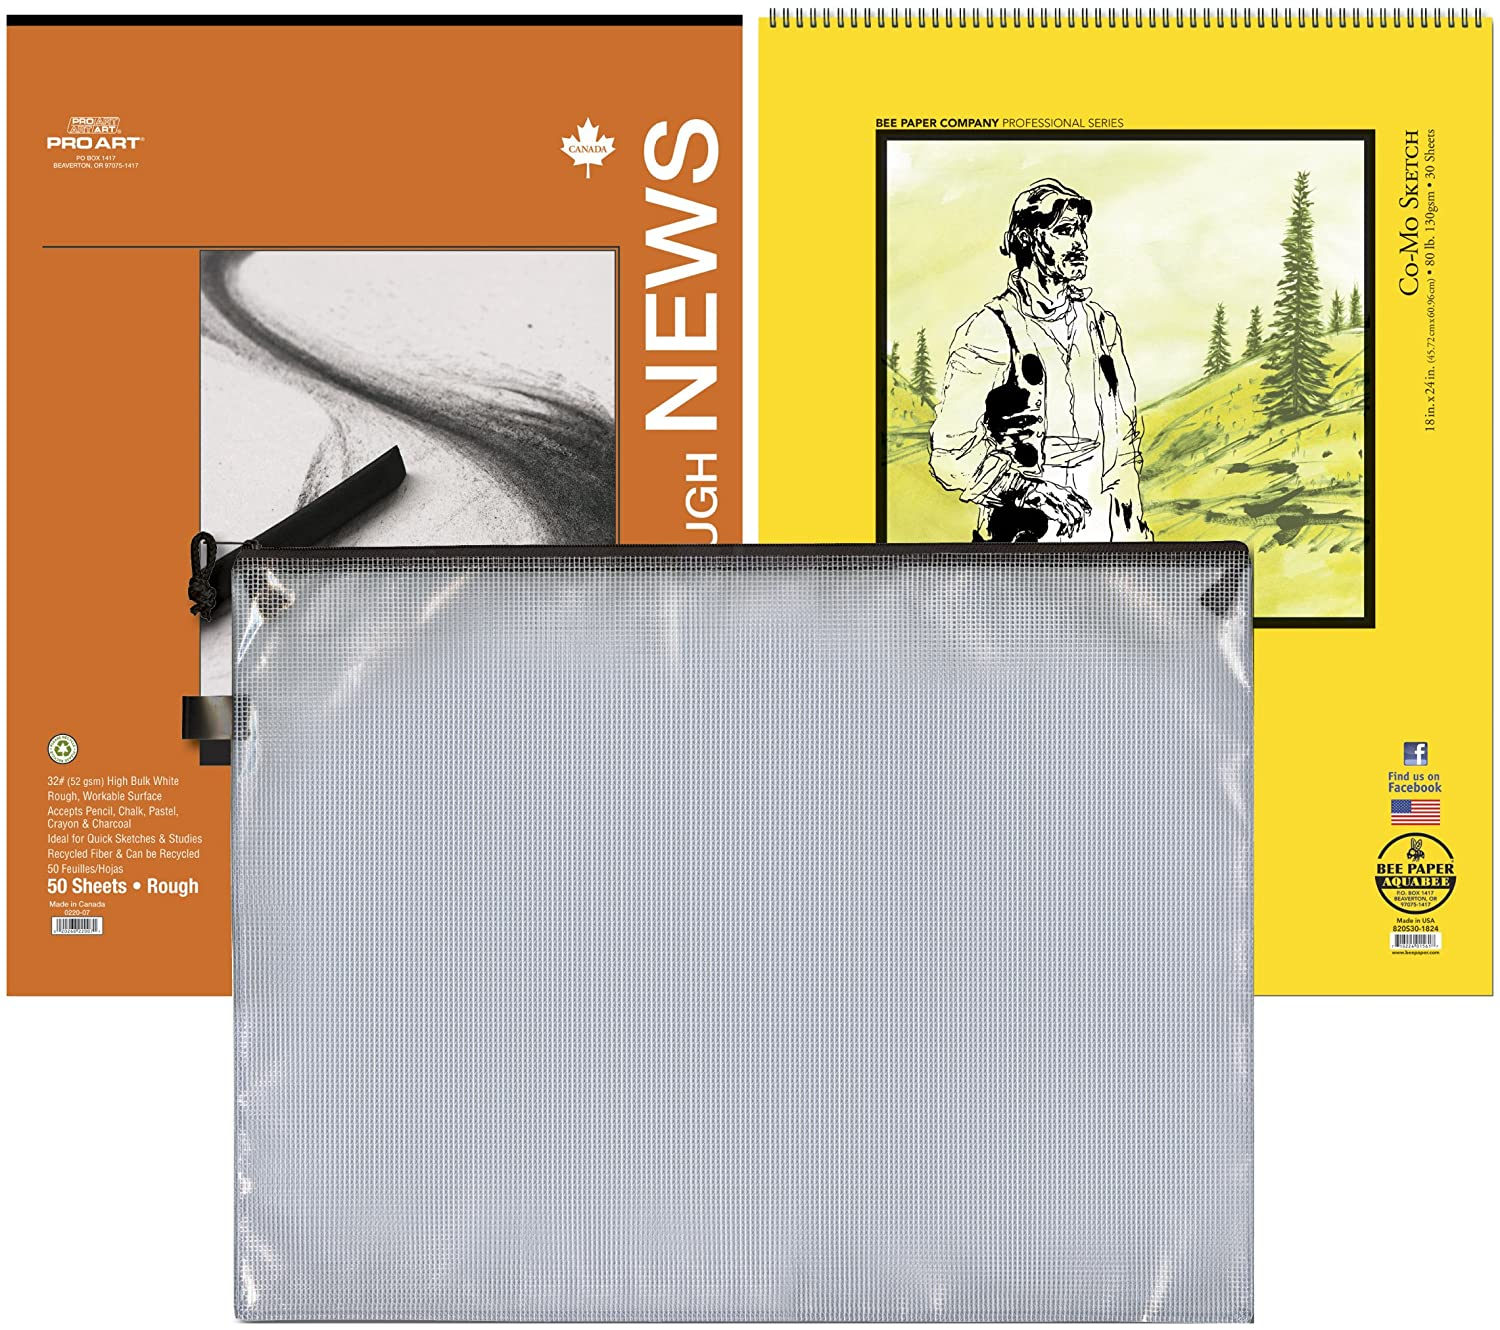 19-inch x 25-inch Mesh Bag with Zipper and Paper Pads Value pack